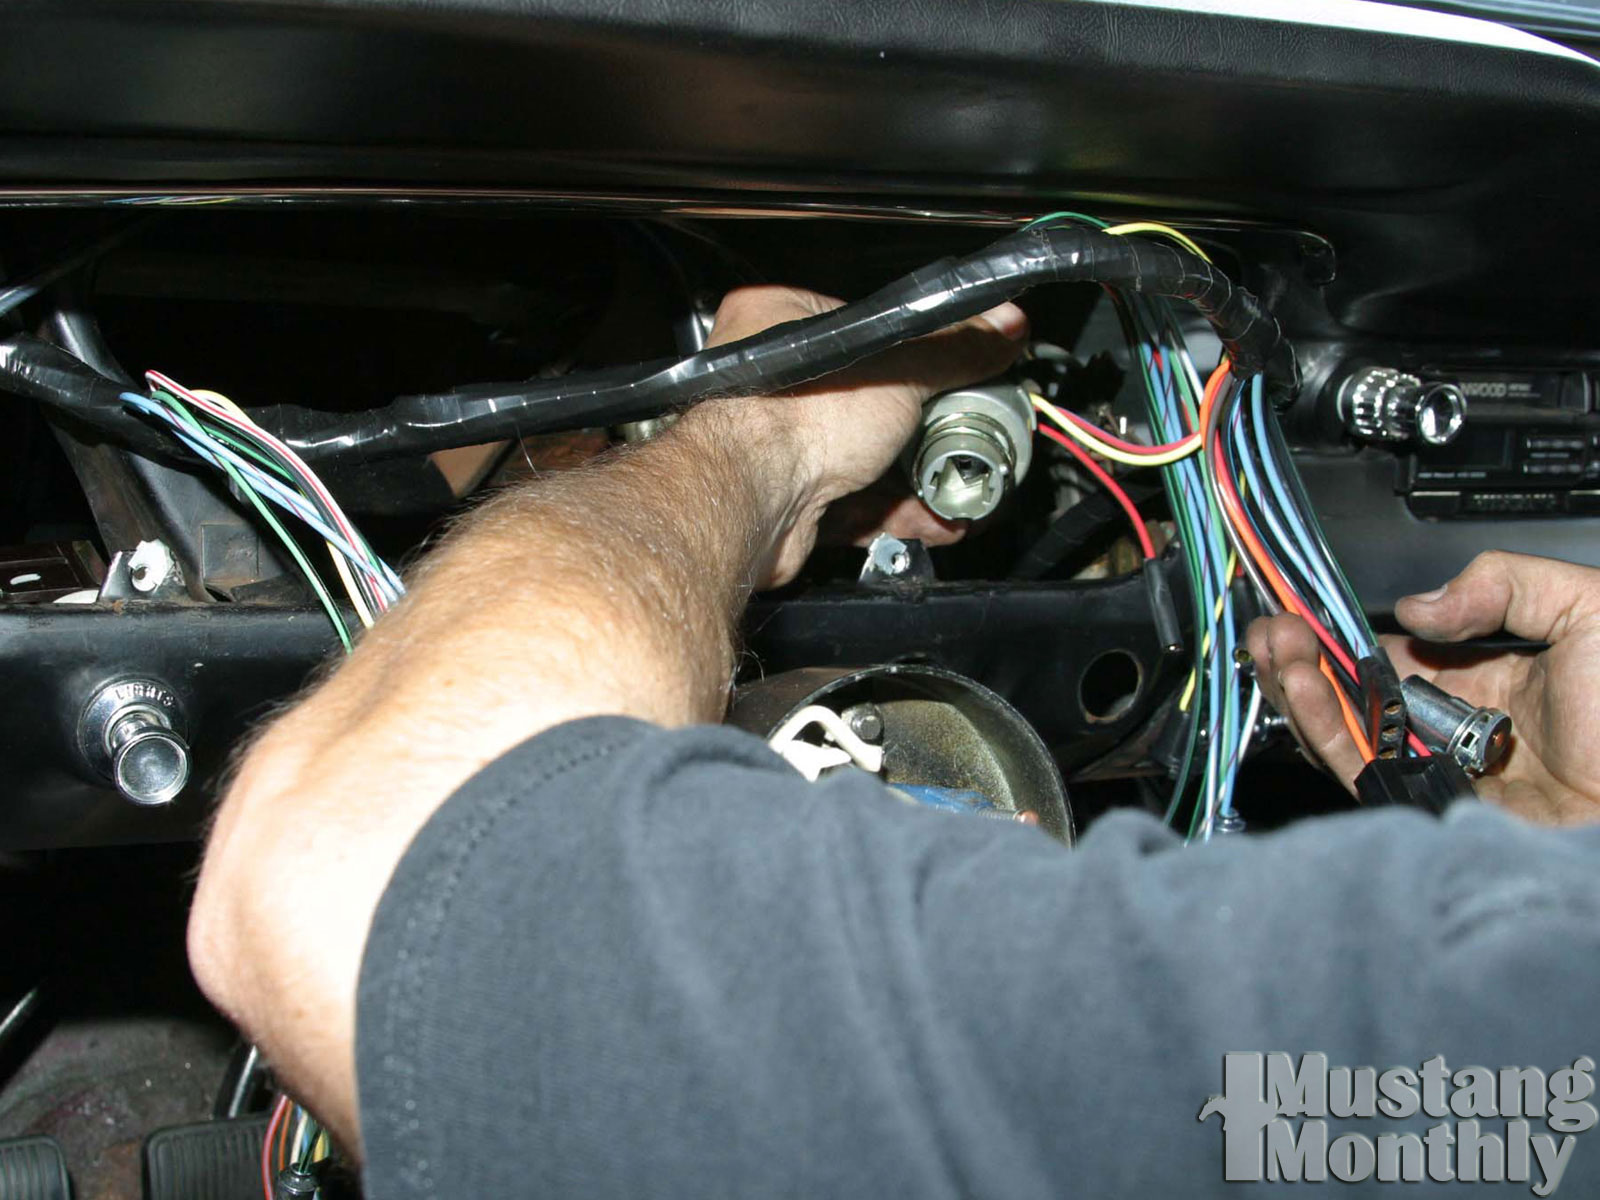 medium resolution of how to install a new wiring harness for your ford mustang mustanghow to install a new